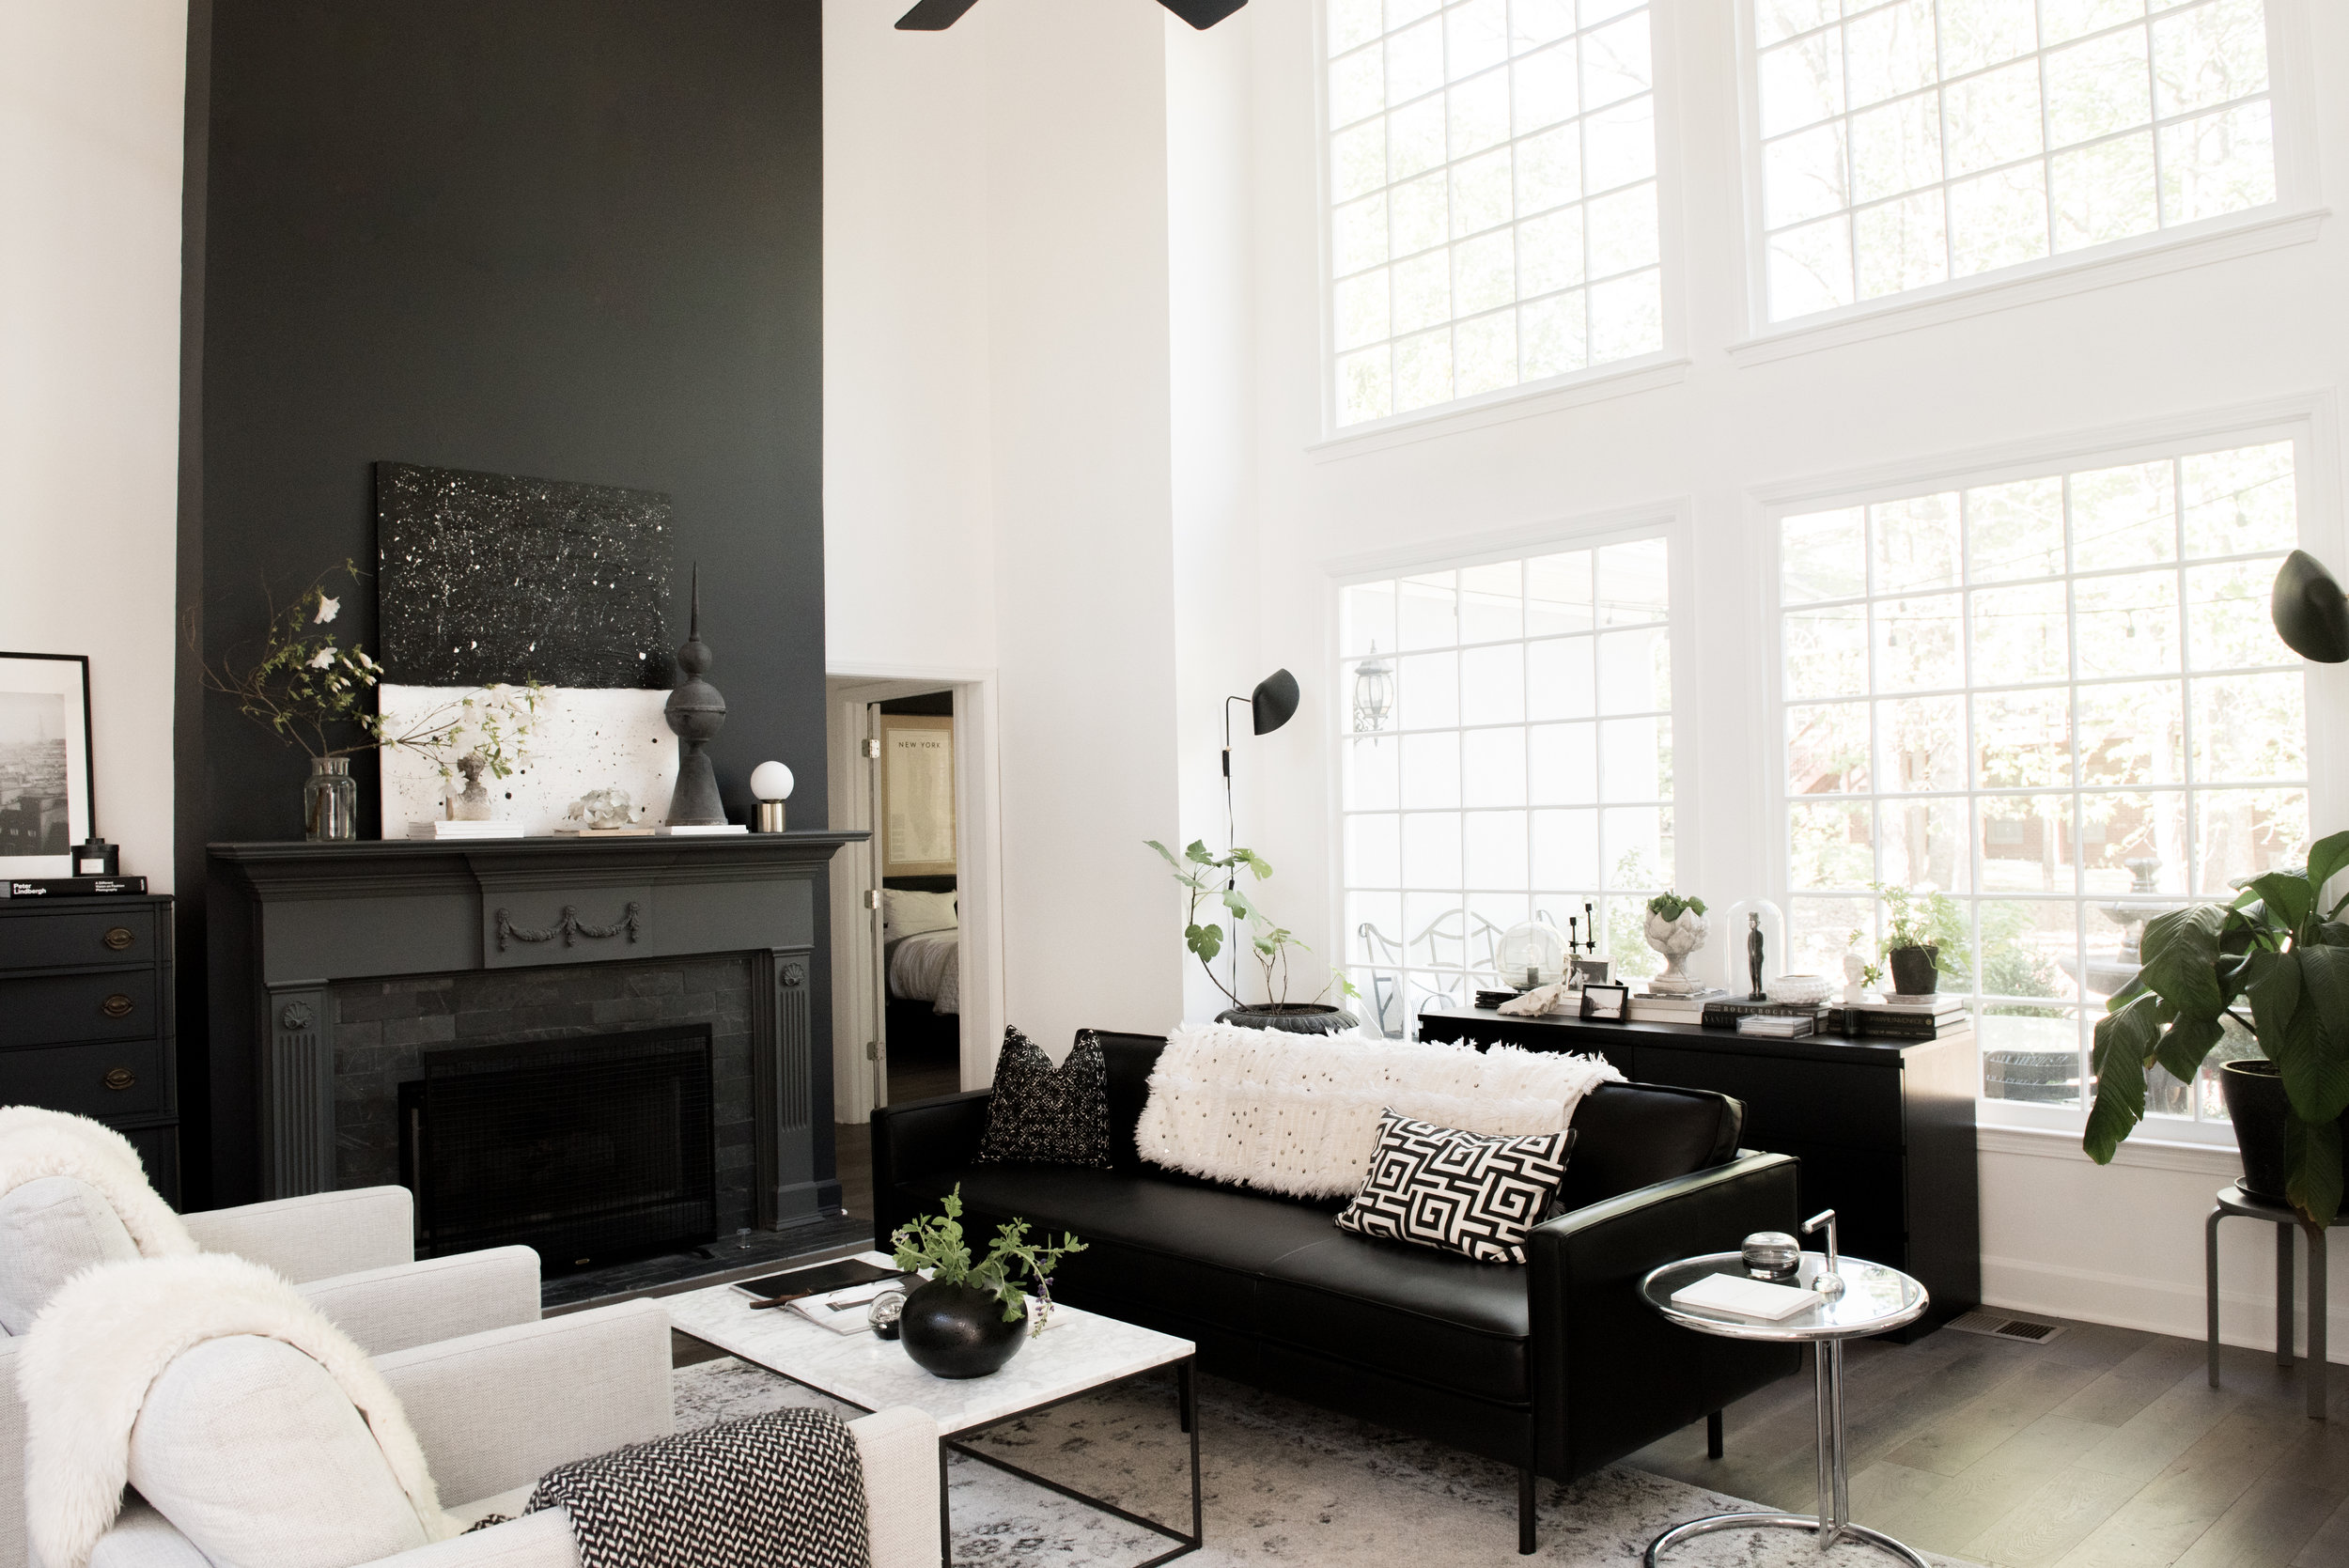 Buy, Sell, Renovate, Decorate - Visit our Blog for daily inspiration